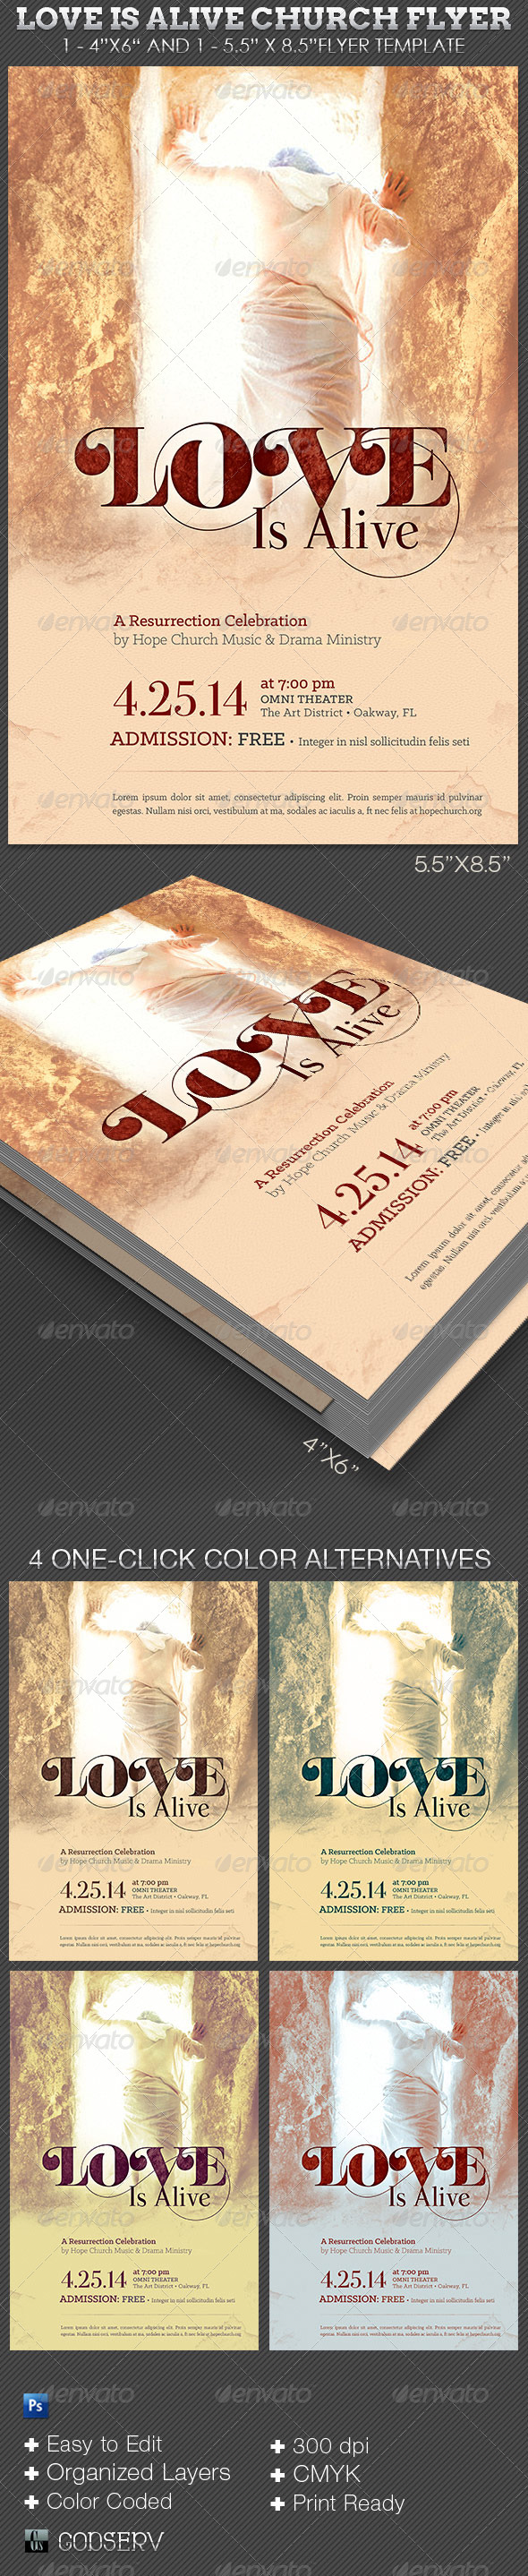 GraphicRiver Love Is Alive Church Flyer Template 7270639